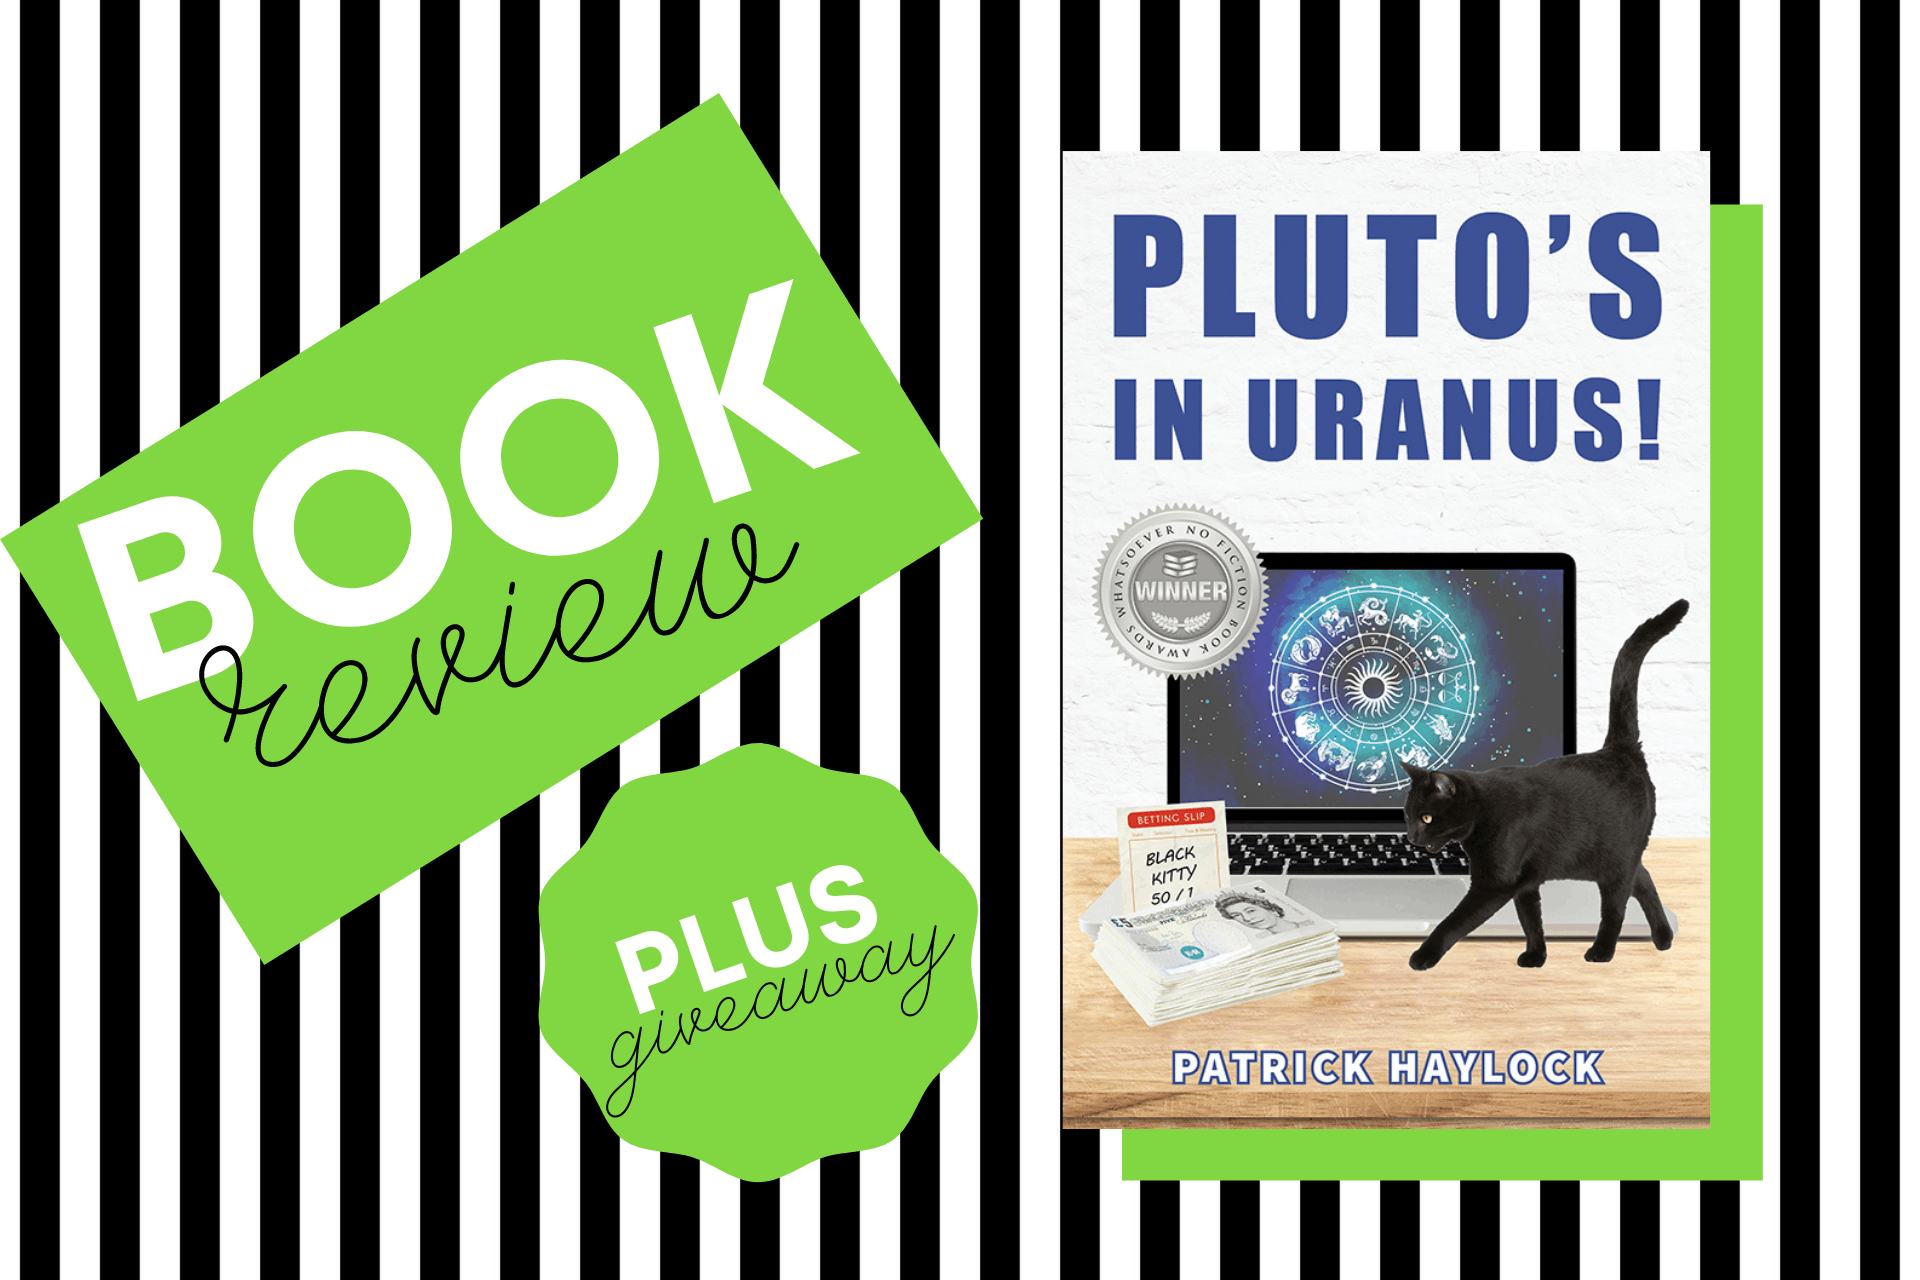 The cover of Pluto's in Uranus